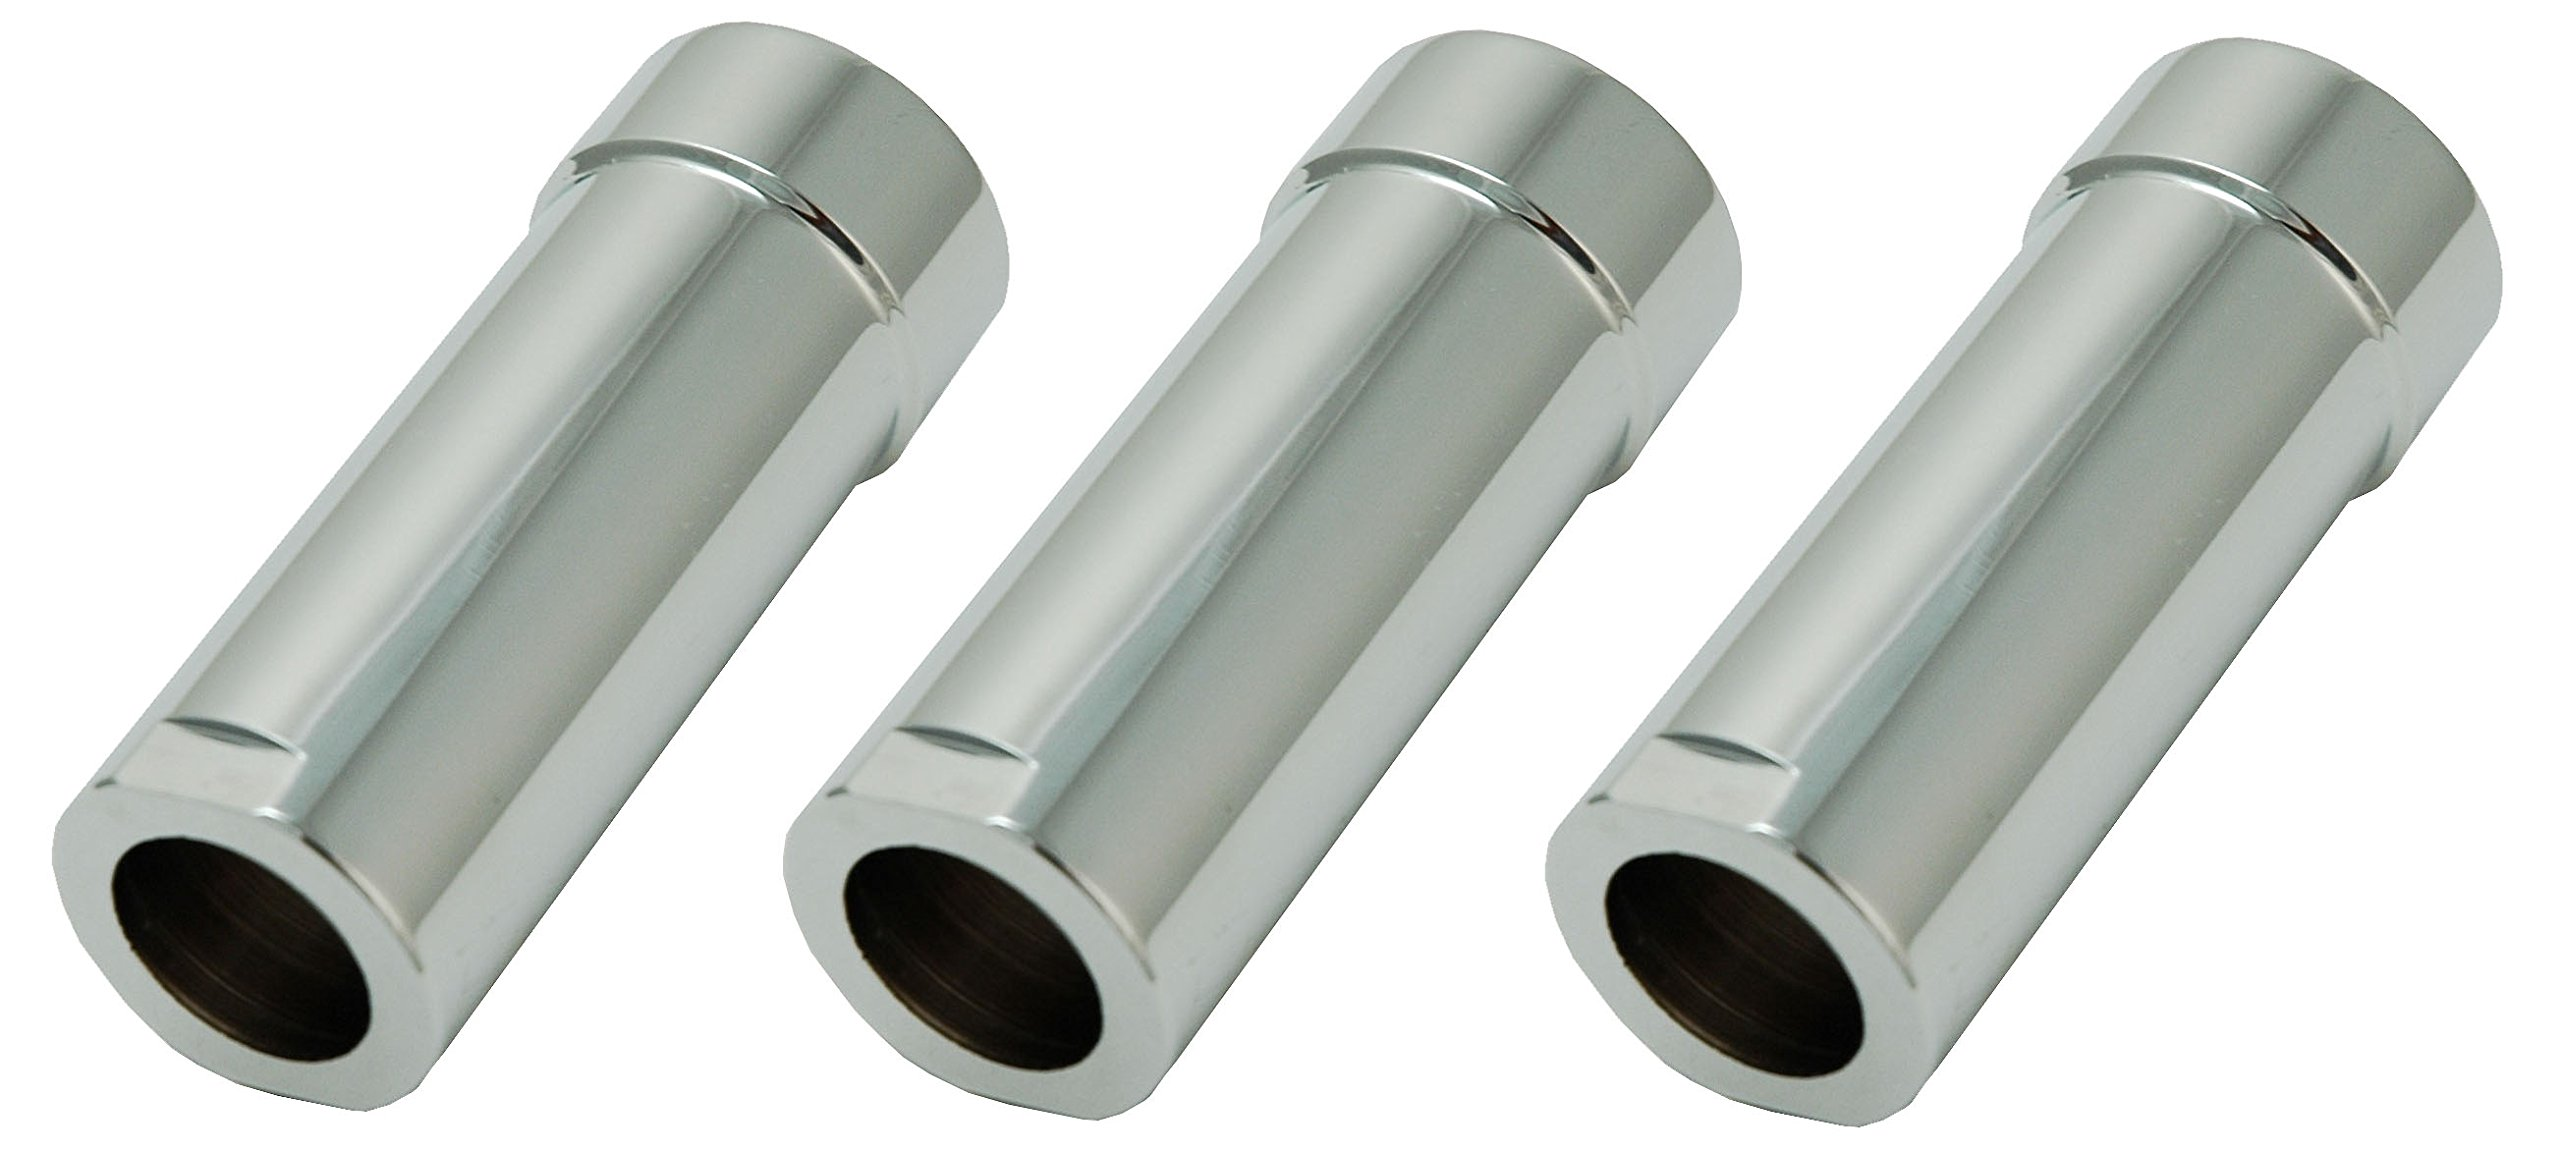 Shower Faucet Sleeves (3 Pieces) Fit Delta or Peerless 2- Or 3-handle Shower Valve, Chrome Plated - By Plumb USA